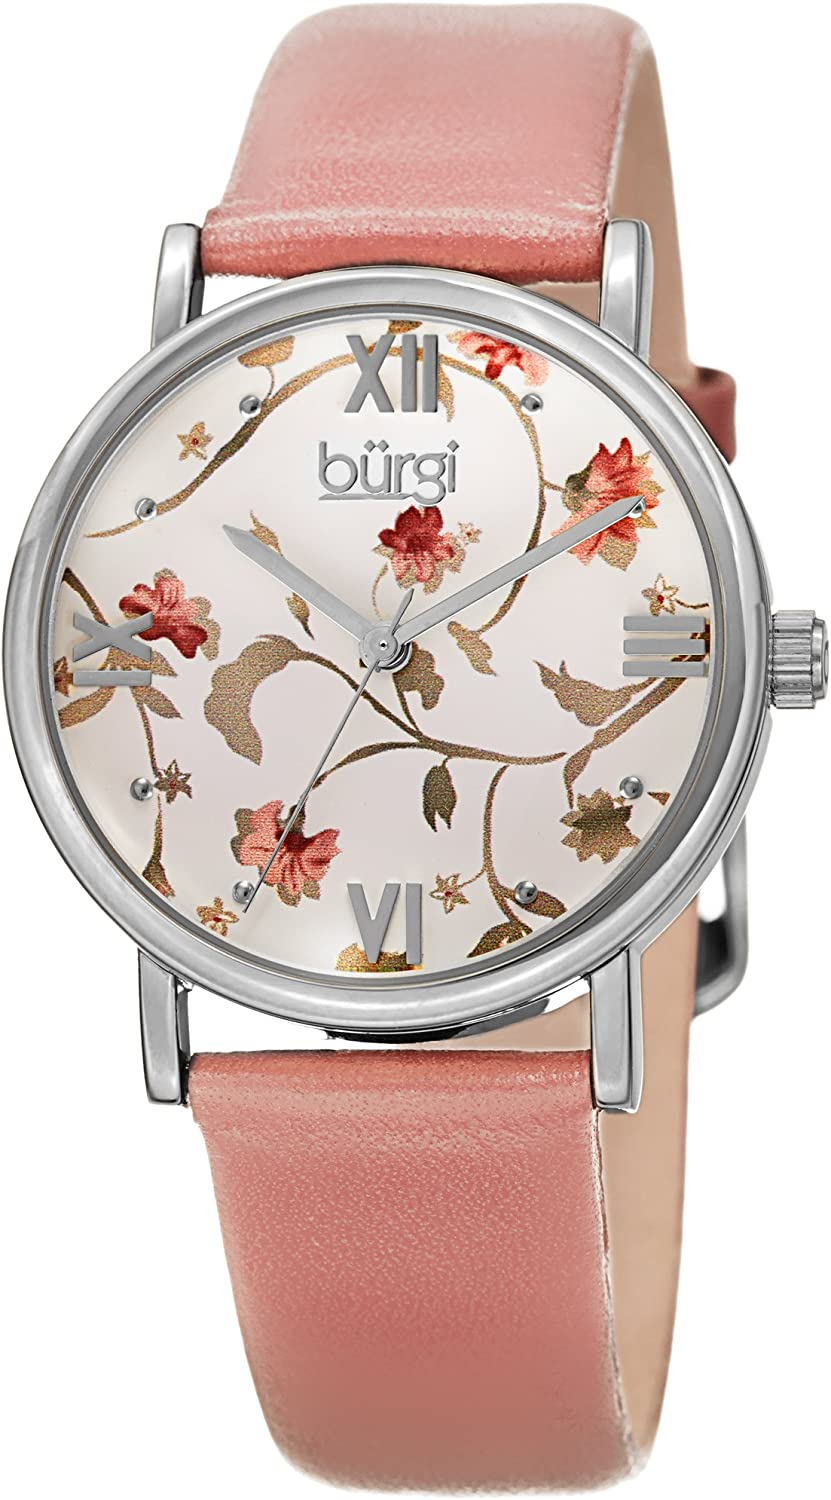 Burgi Stylish Floral Print Women s Watch – On Genuine Leather Strap with Roman Numerals – BUR186